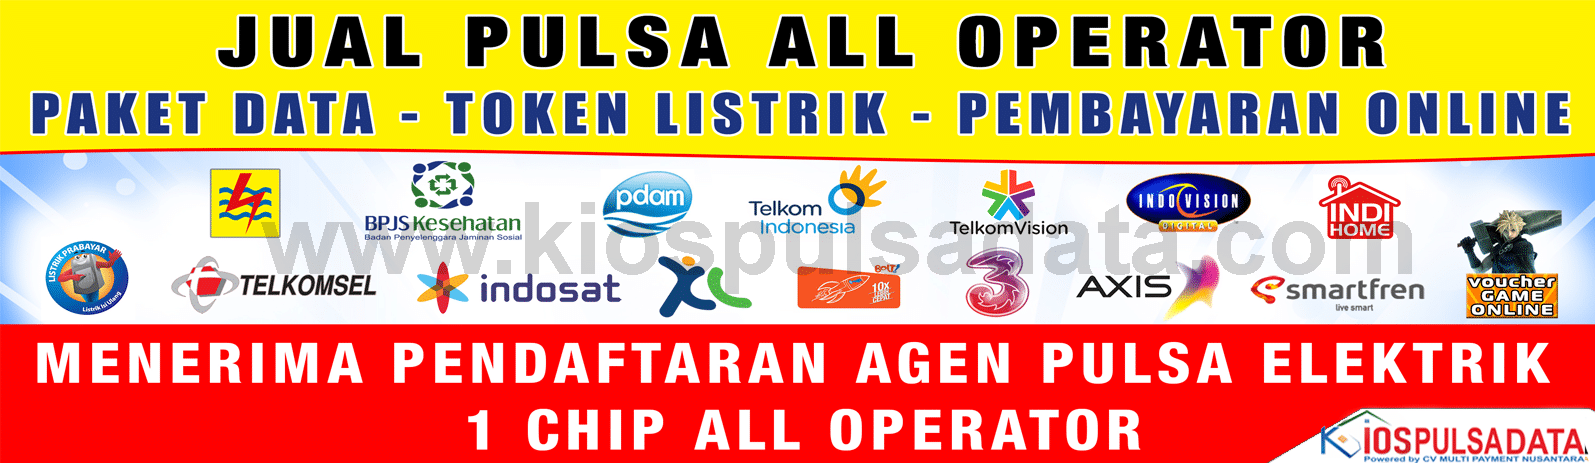 Jual data telkomsel murah